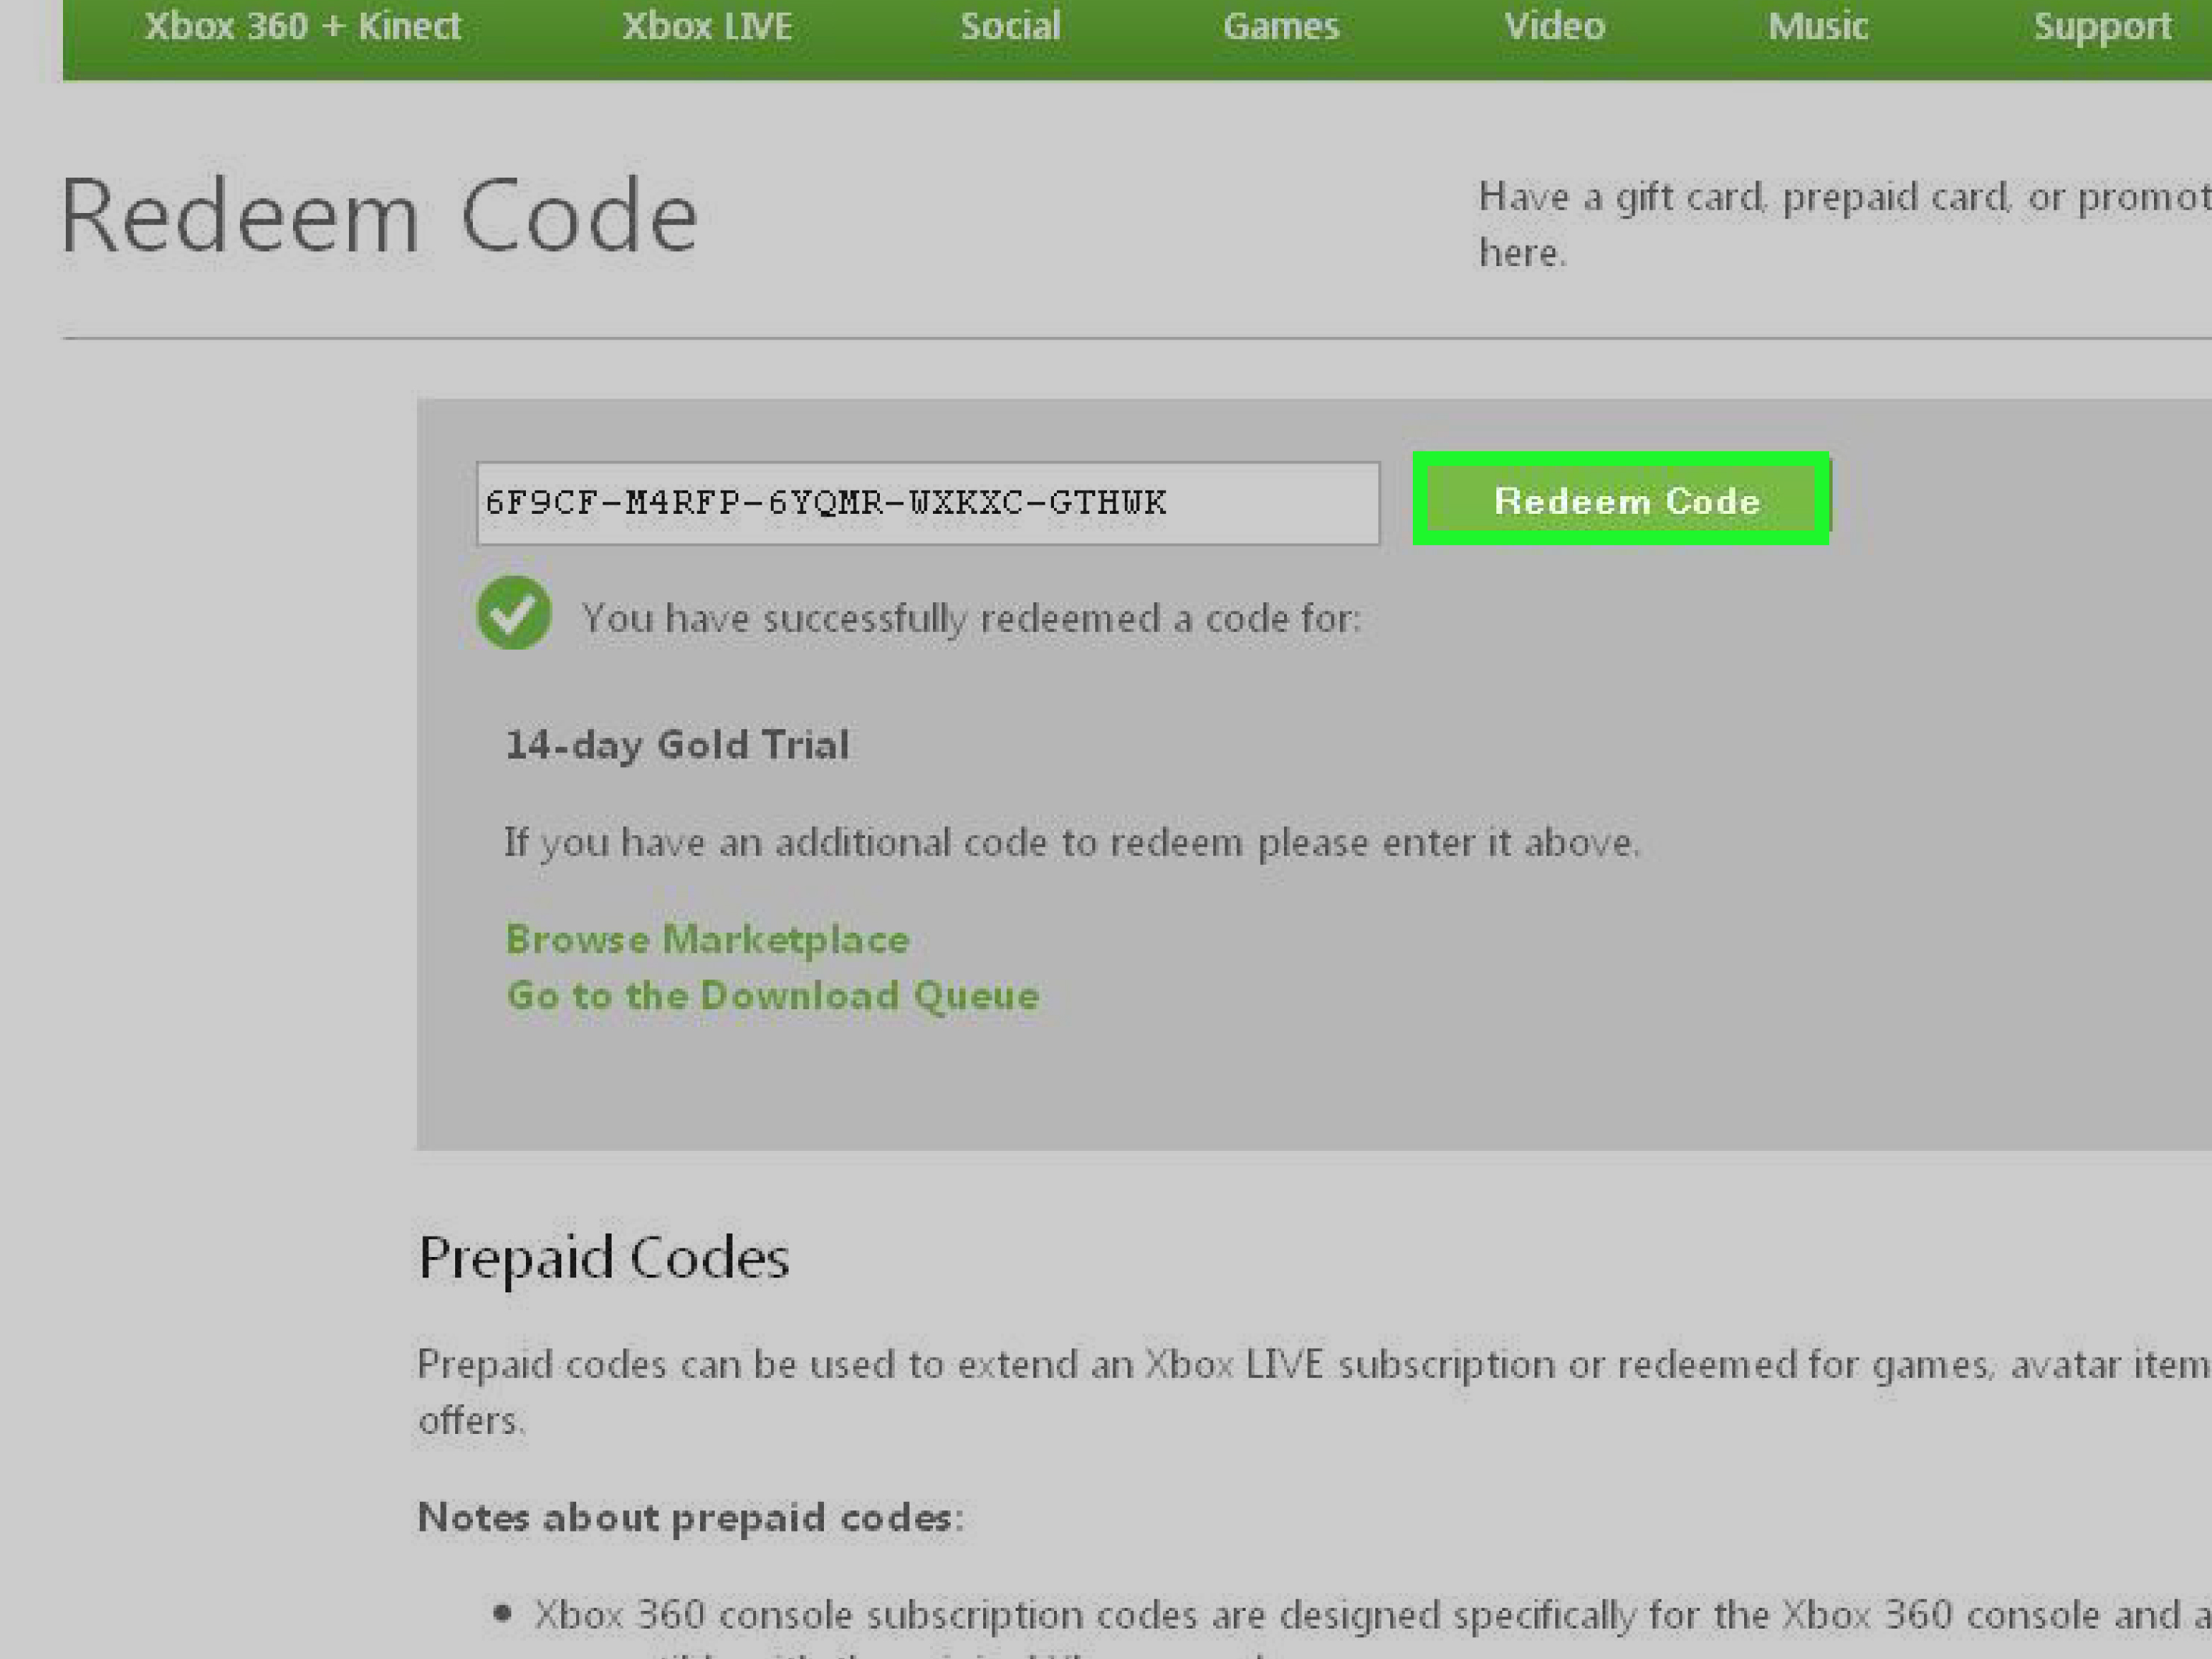 how to get pass code for facebook